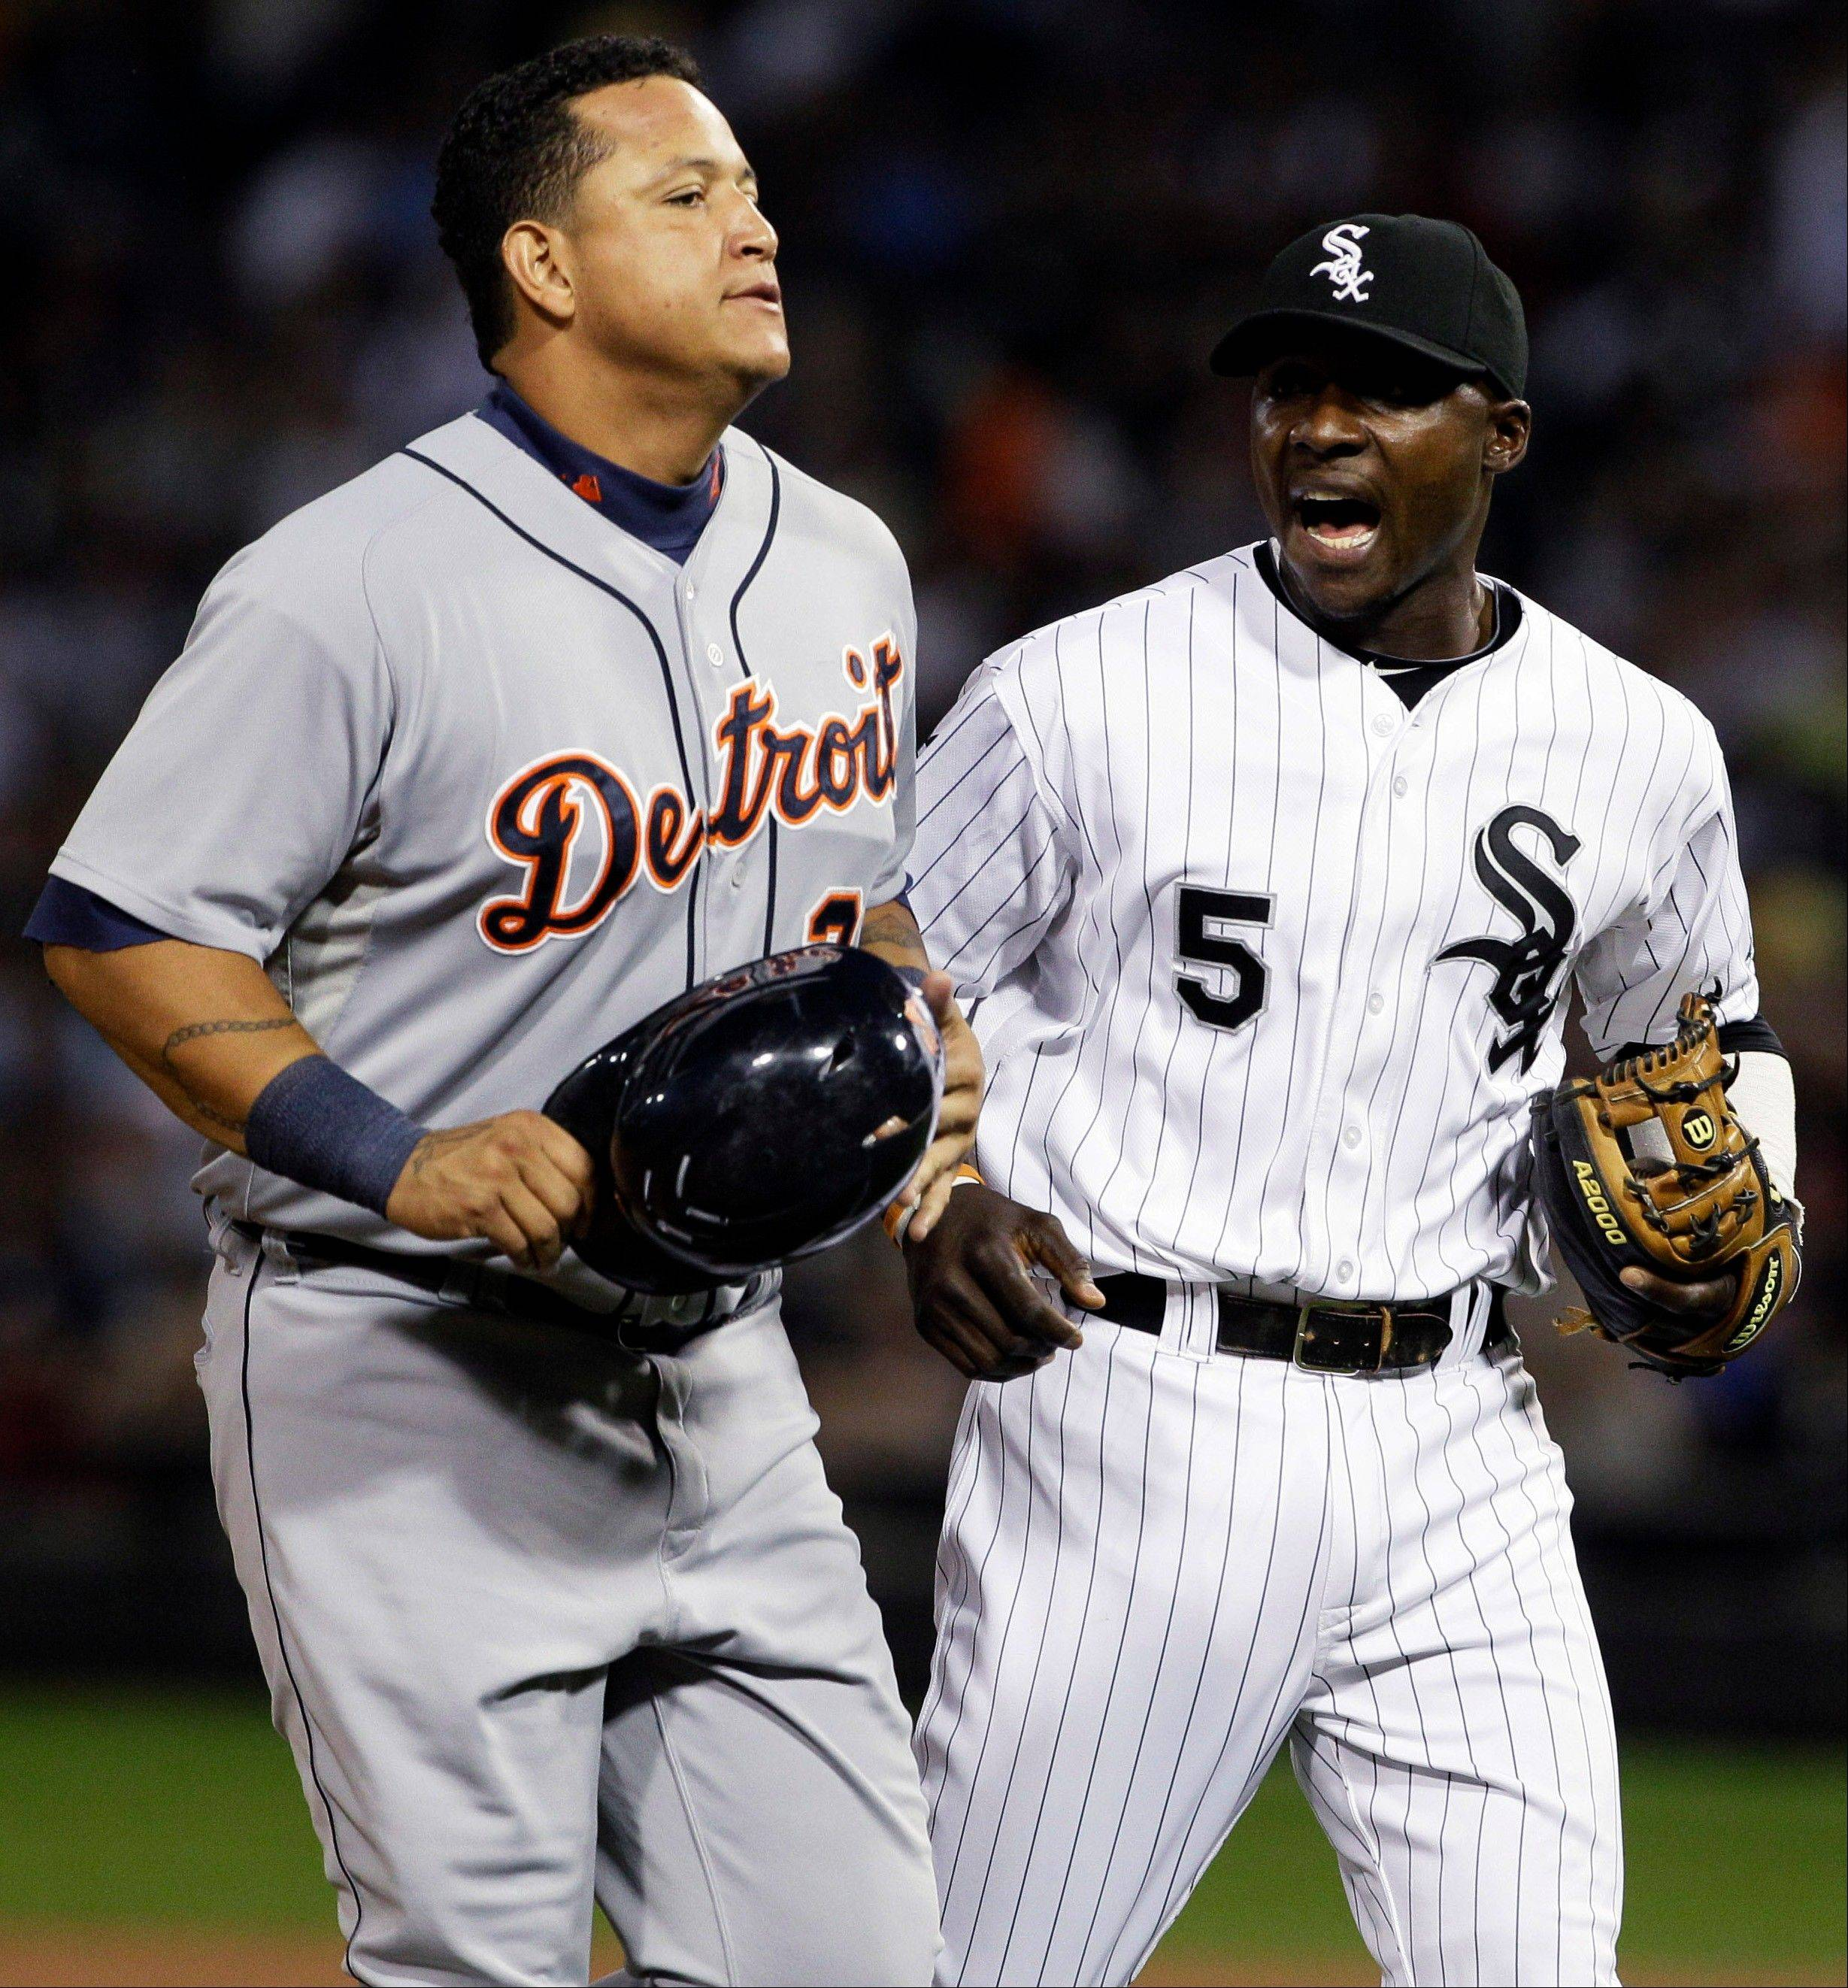 White Sox second baseman Orlando Hudson talks to the Detroit Tigers� Miguel Cabrera Wednesday during the first inning at U.S. Cellular Field.